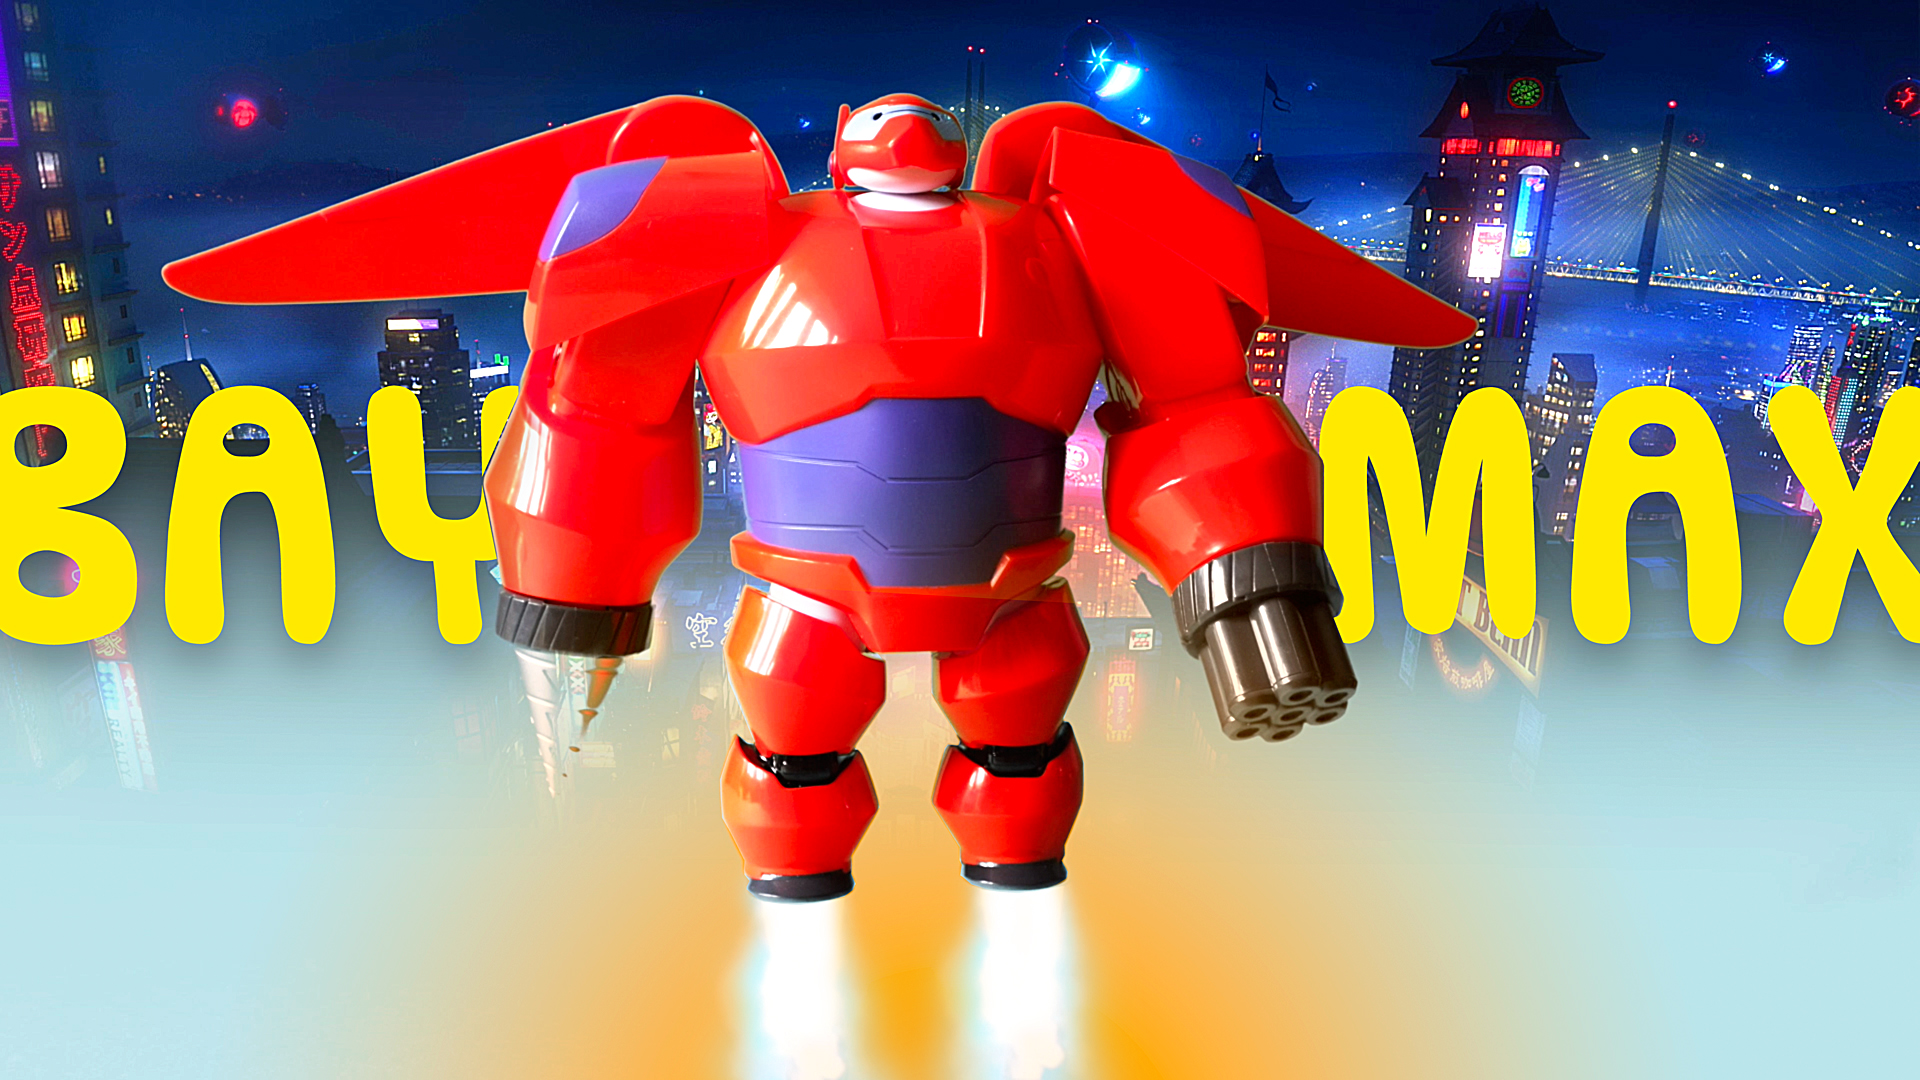 Transforming BAYMAX ARMOR UP 2.0 // Robot Toy from Big Hero 6